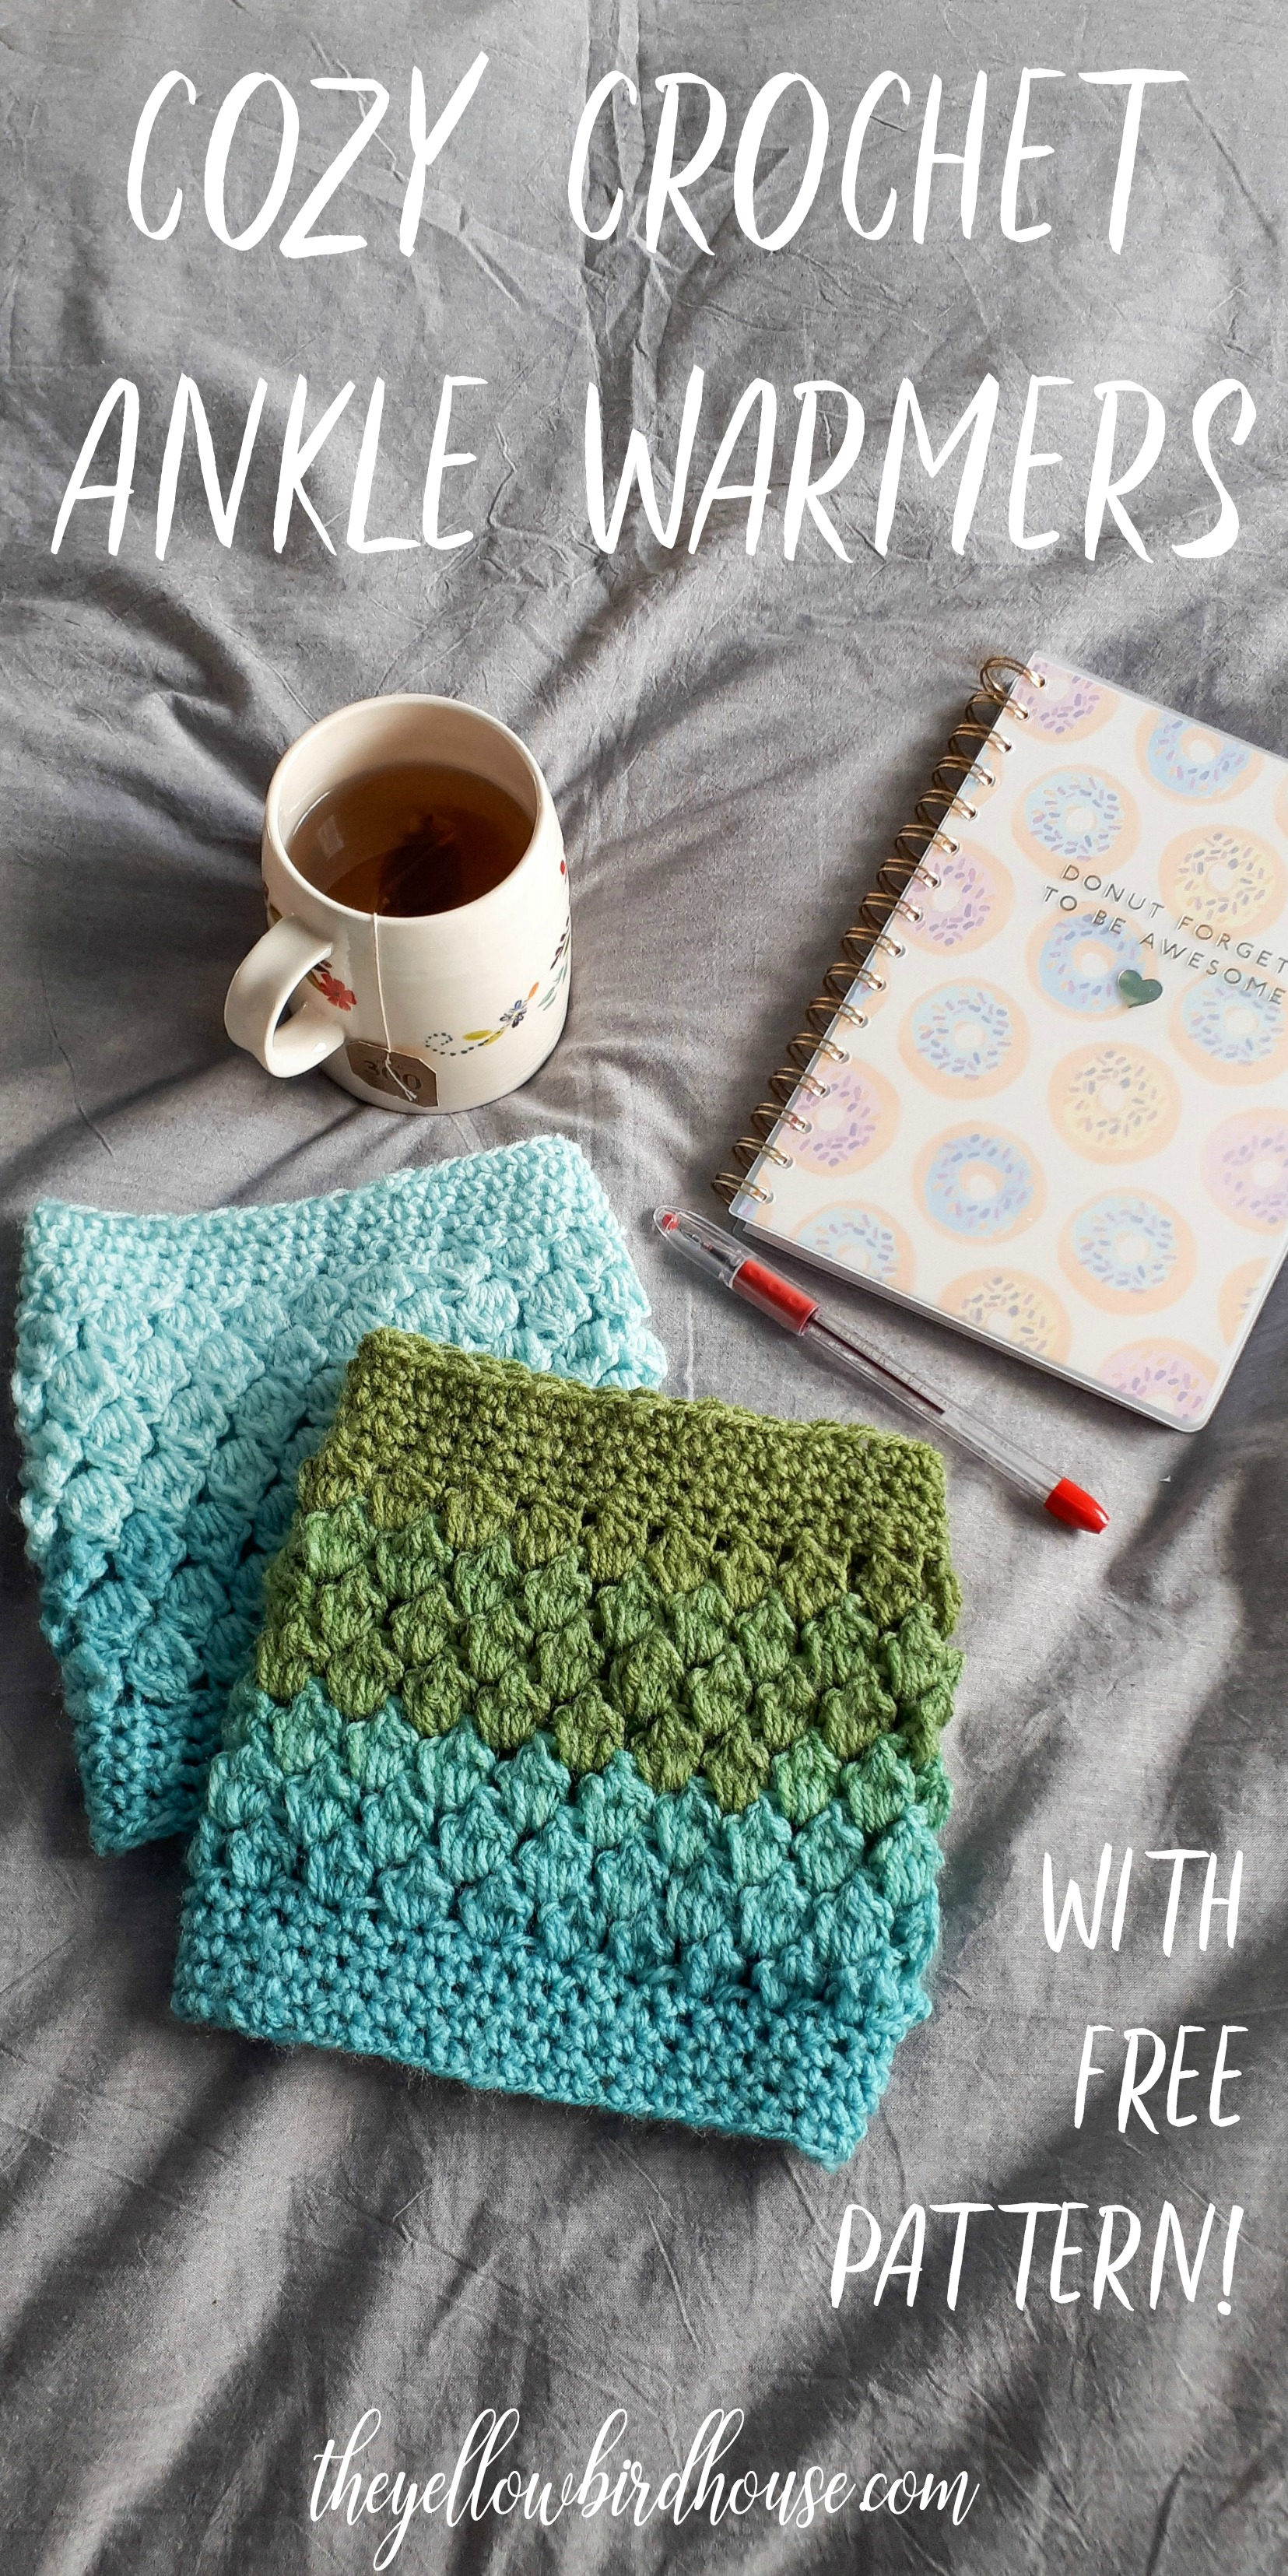 The coziest crochet ankle warmers with free pattern! This free diy works up quickly and will keep you toasty warm over the winter months. These crochet ankle warmers also make a great gift. Free tutorial for crochet leg warmers.